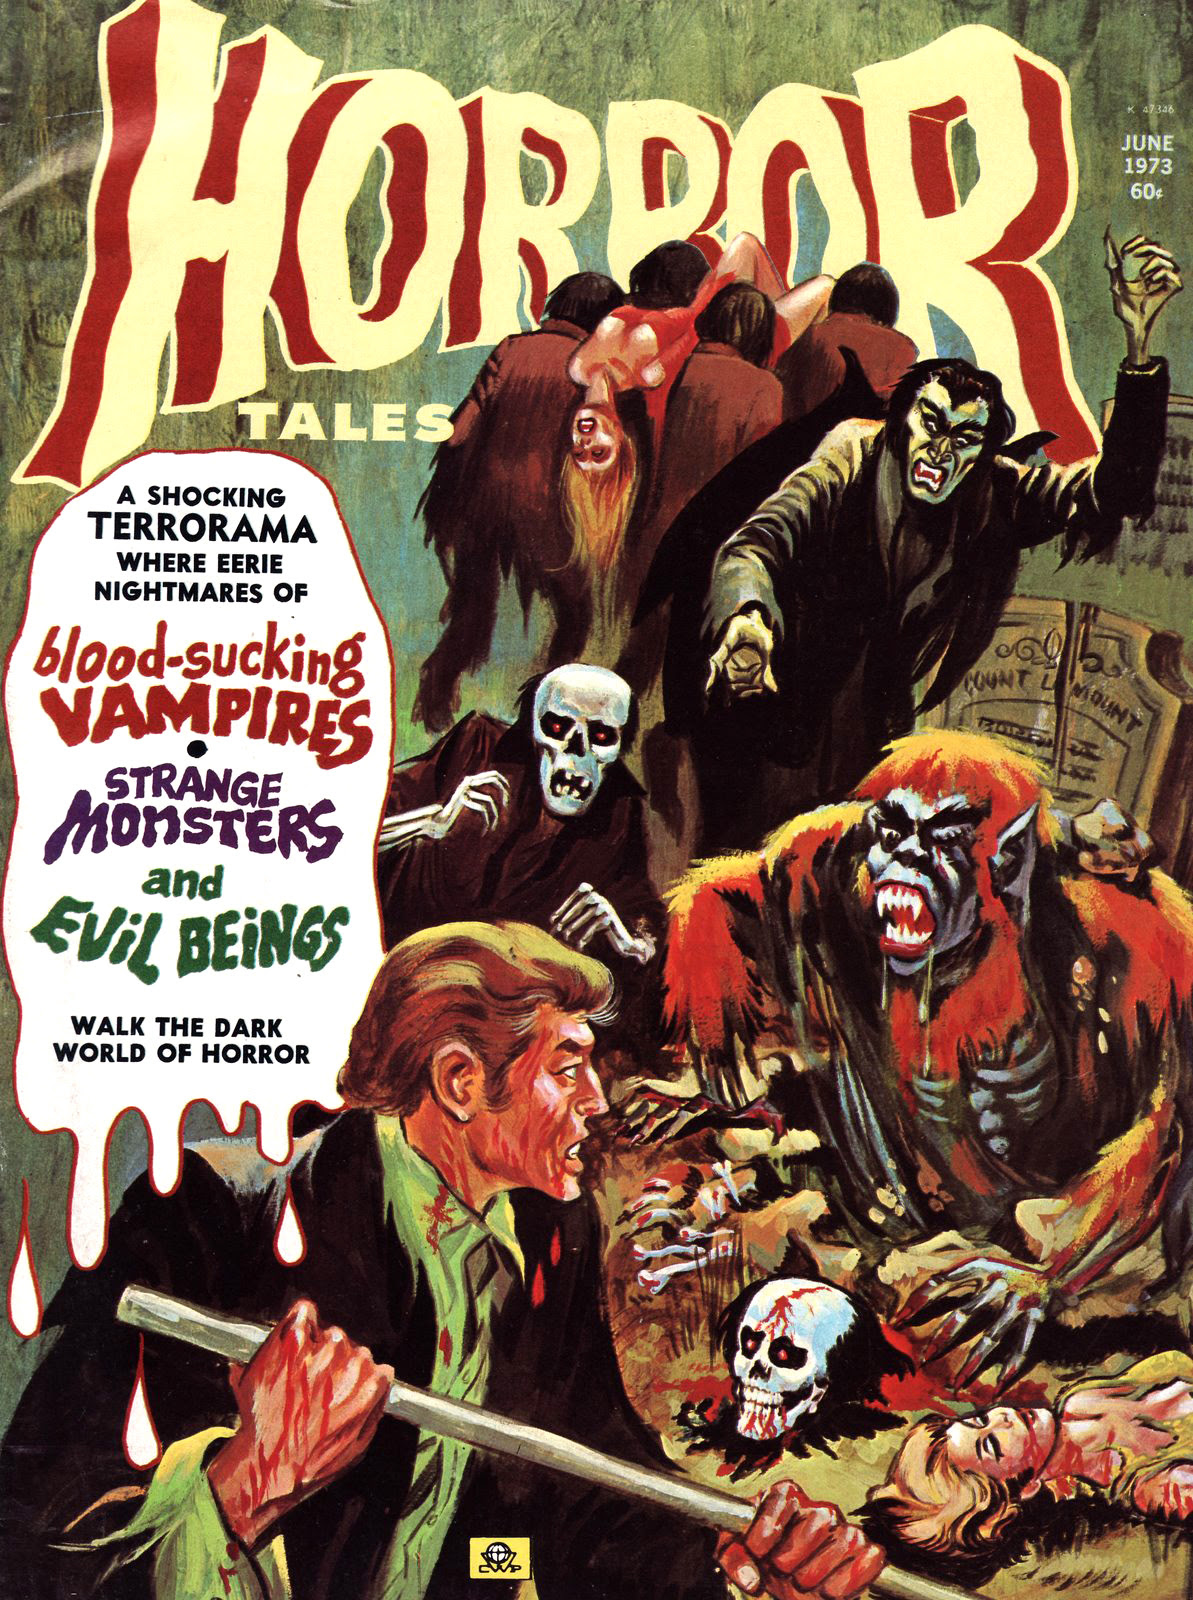 Horror Tales - Vol. 5 #5 (Eerie Publications, 1973)